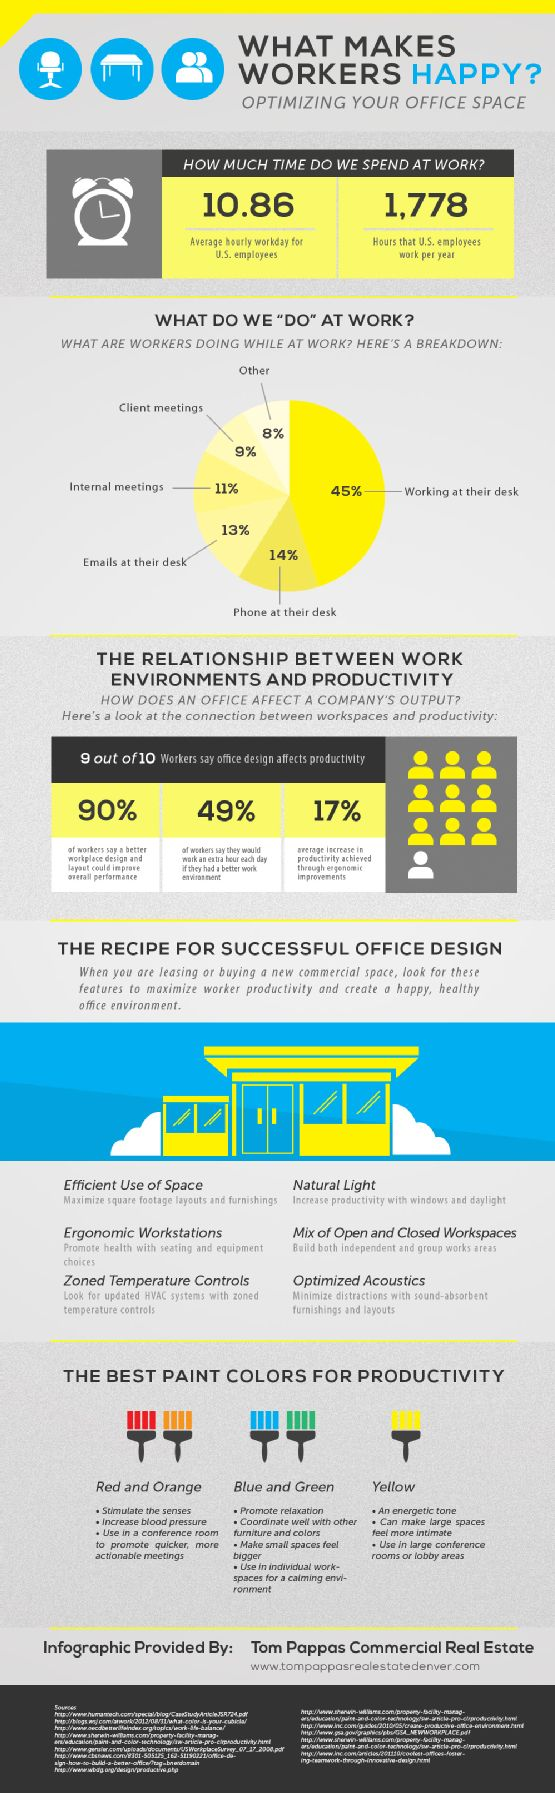 An attractive workspace enhances the way your staff works. This infographic from a real estate broker shows how ergonomics, natural light, office décor, acoustics, and the right temperature controls can boost productivity and office morale